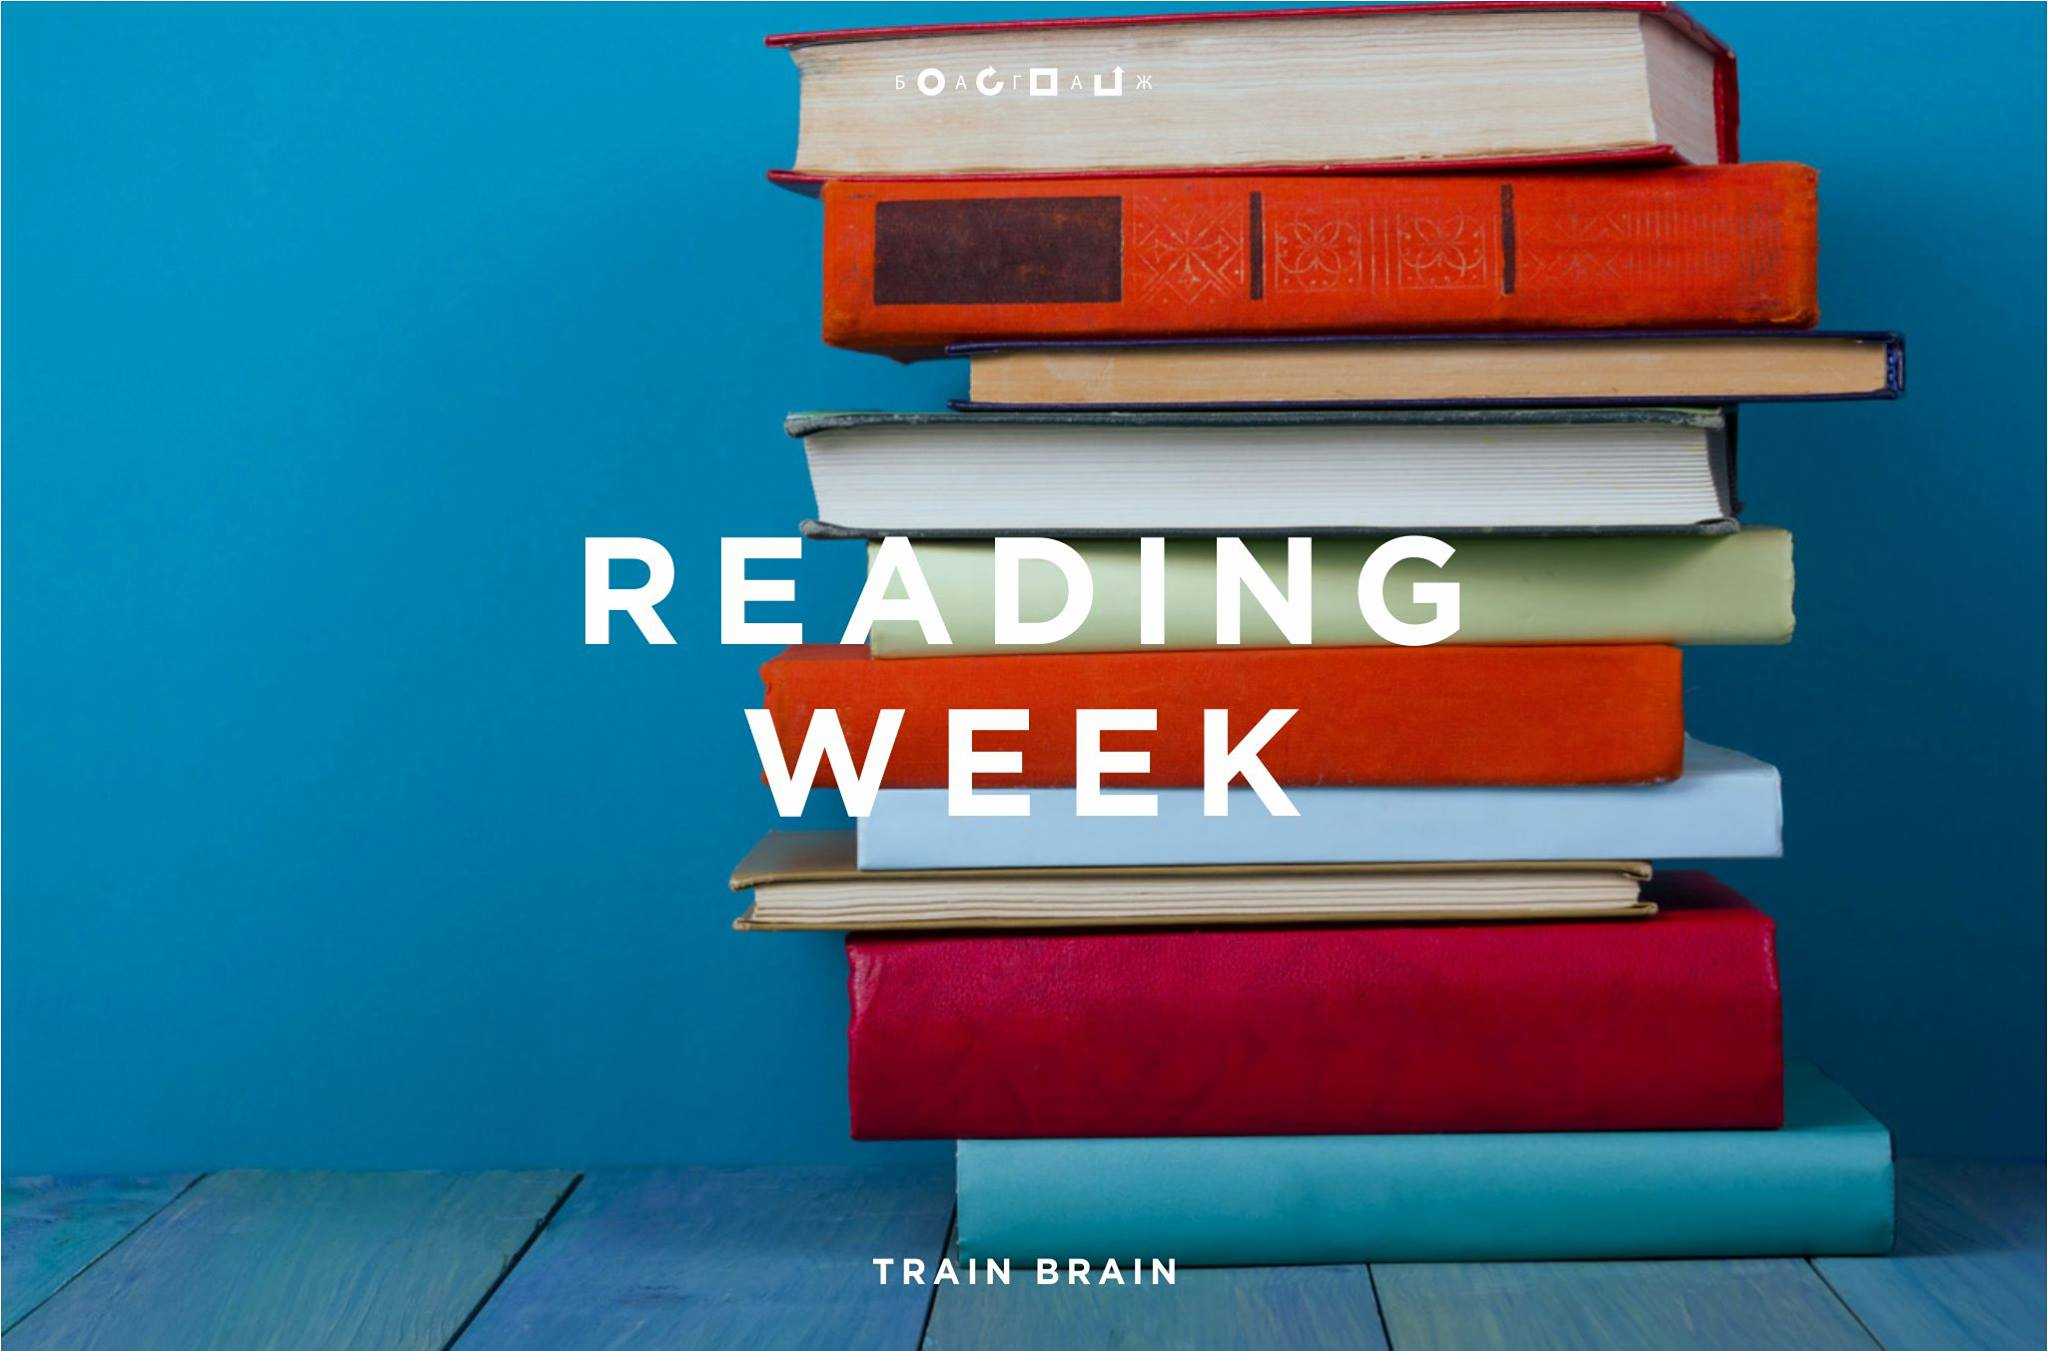 37_june_2017_READING WEEK